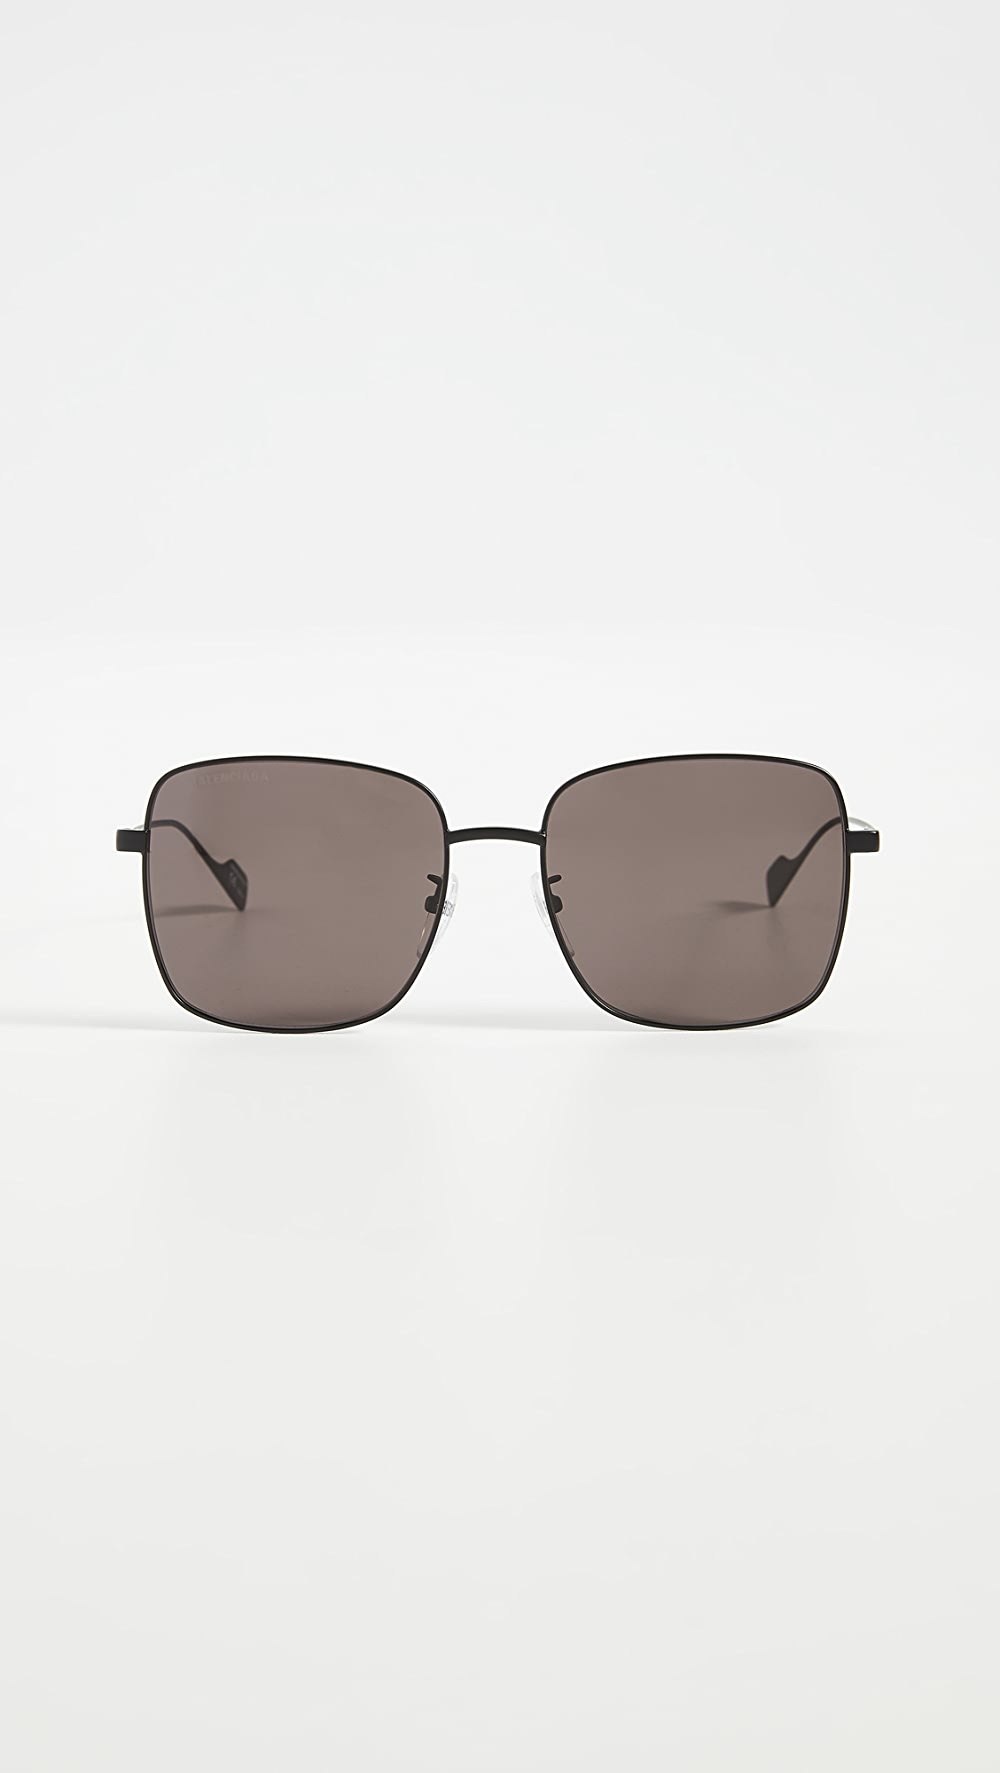 Active Balenciaga - Ghost Oversized Metal Square Sunglasses To Have A Long Historical Standing